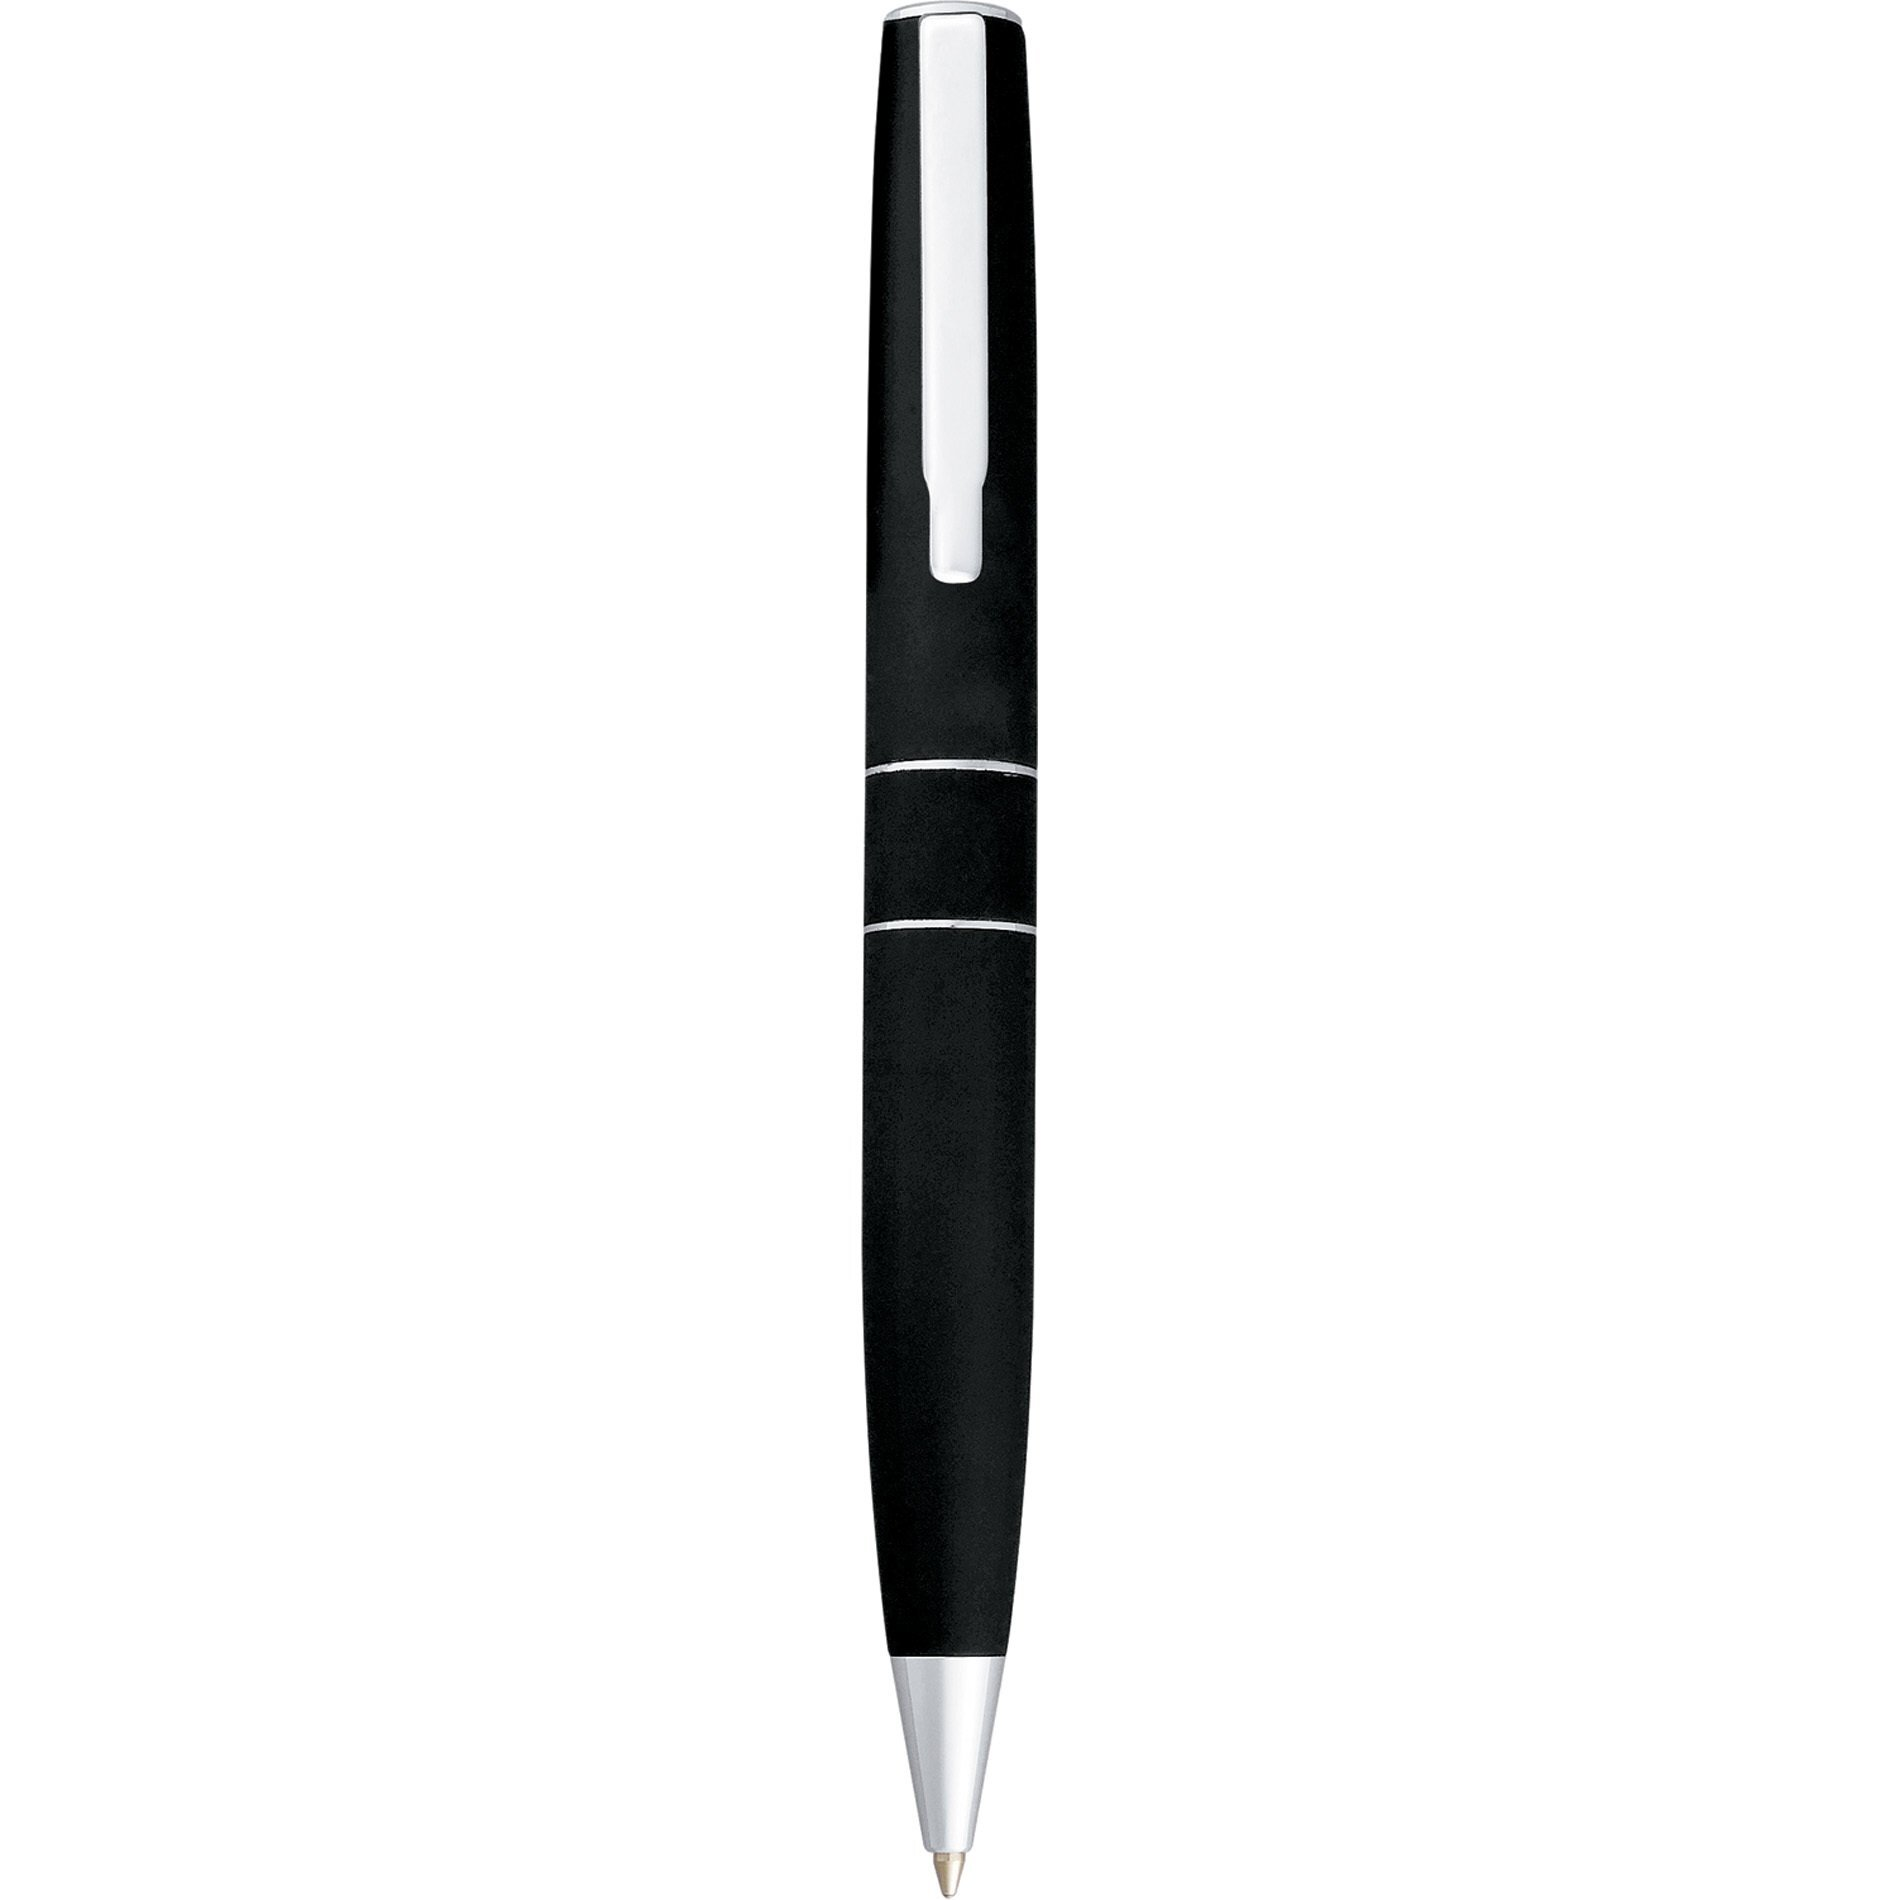 SoHo Twist Ballpoint Metal Gift Pen